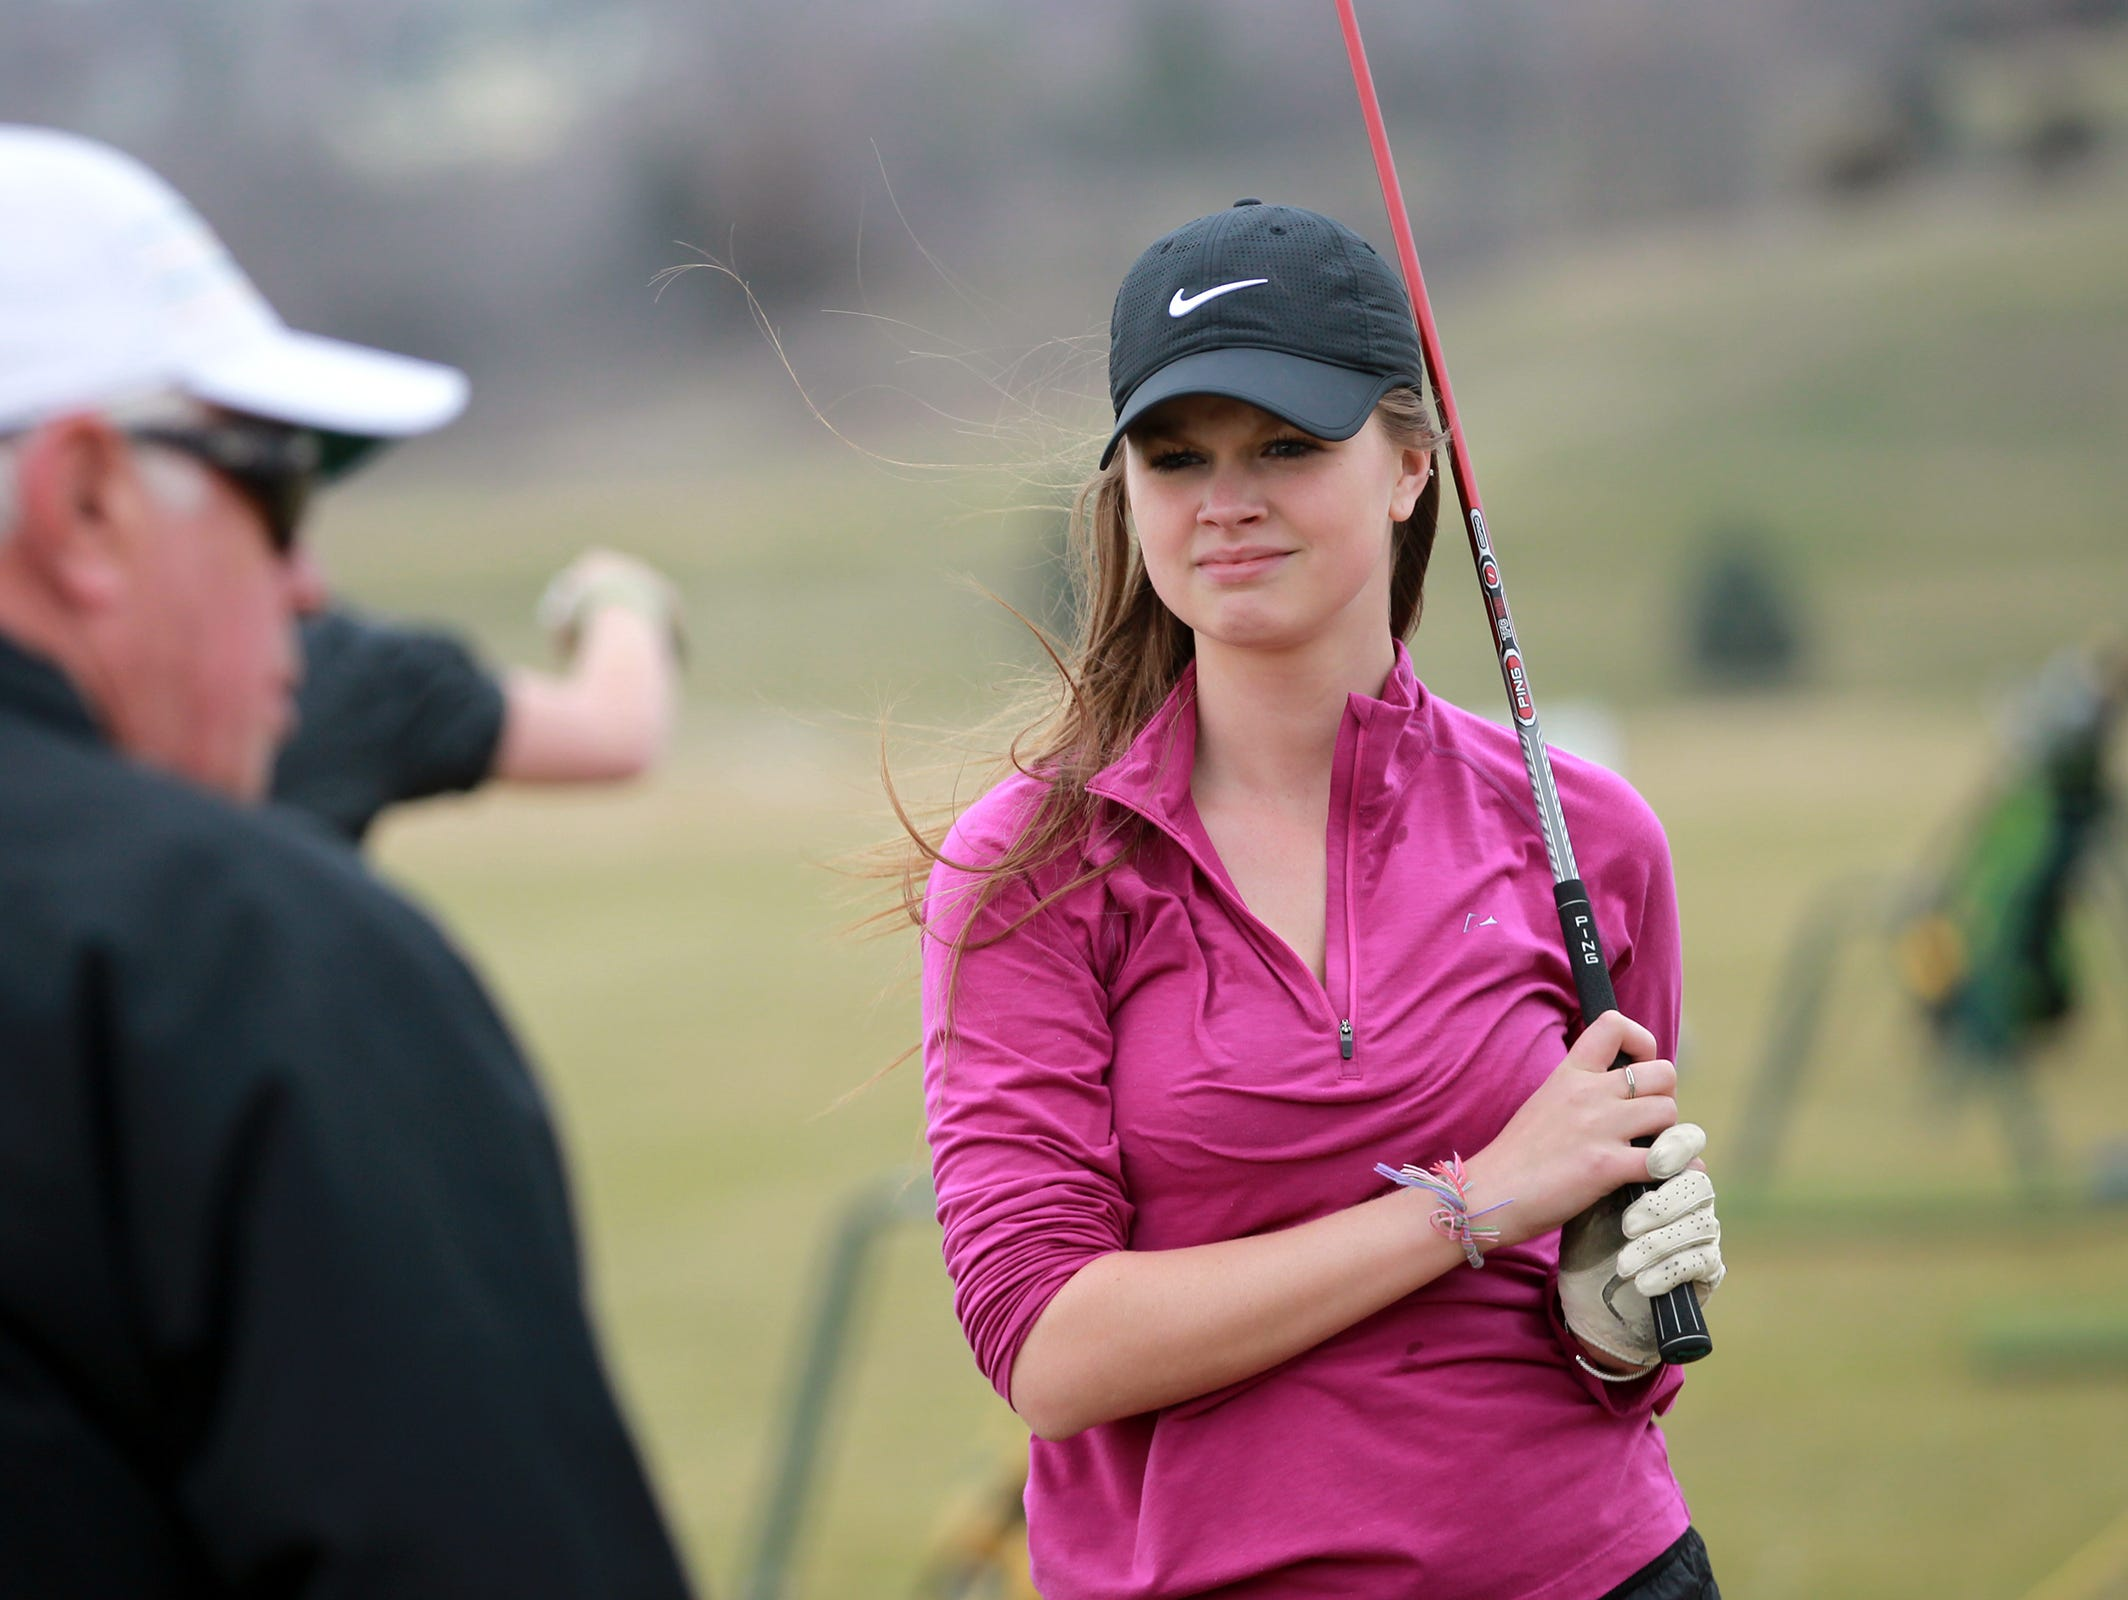 West High's Allye Boardman practices with teammates at the Brown Deer Golf Club in Coralville on Monday, April 6, 2015. David Scrivner / Iowa City Press-Citizen